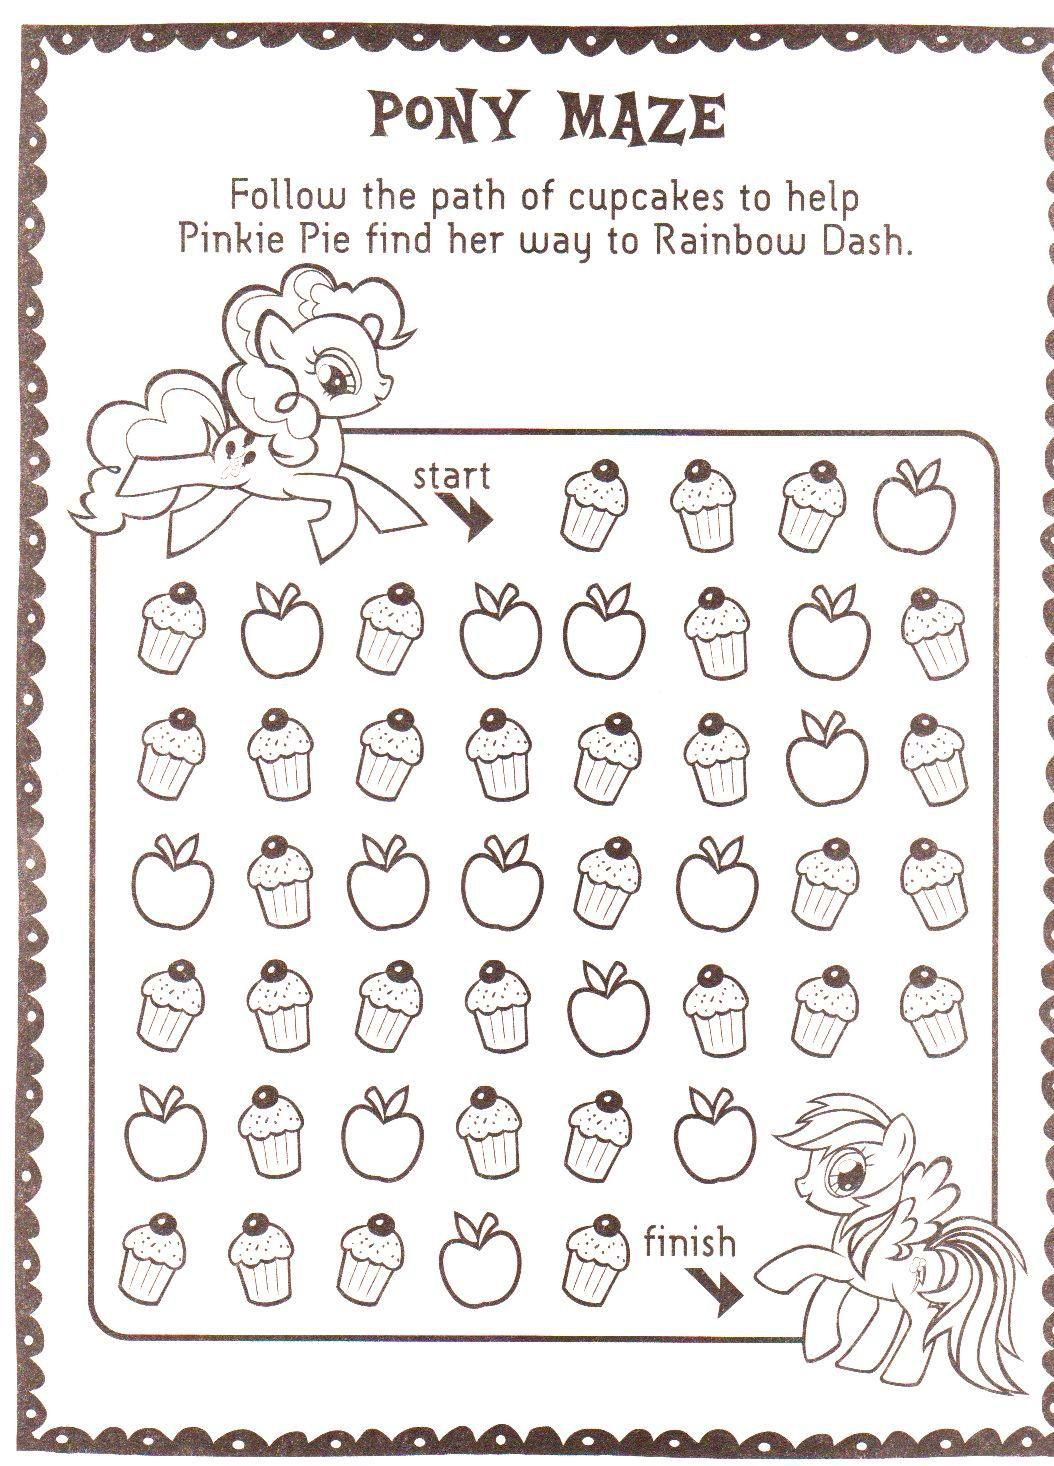 Pinkie Pie And Rainbow Dash Cupcake Maze